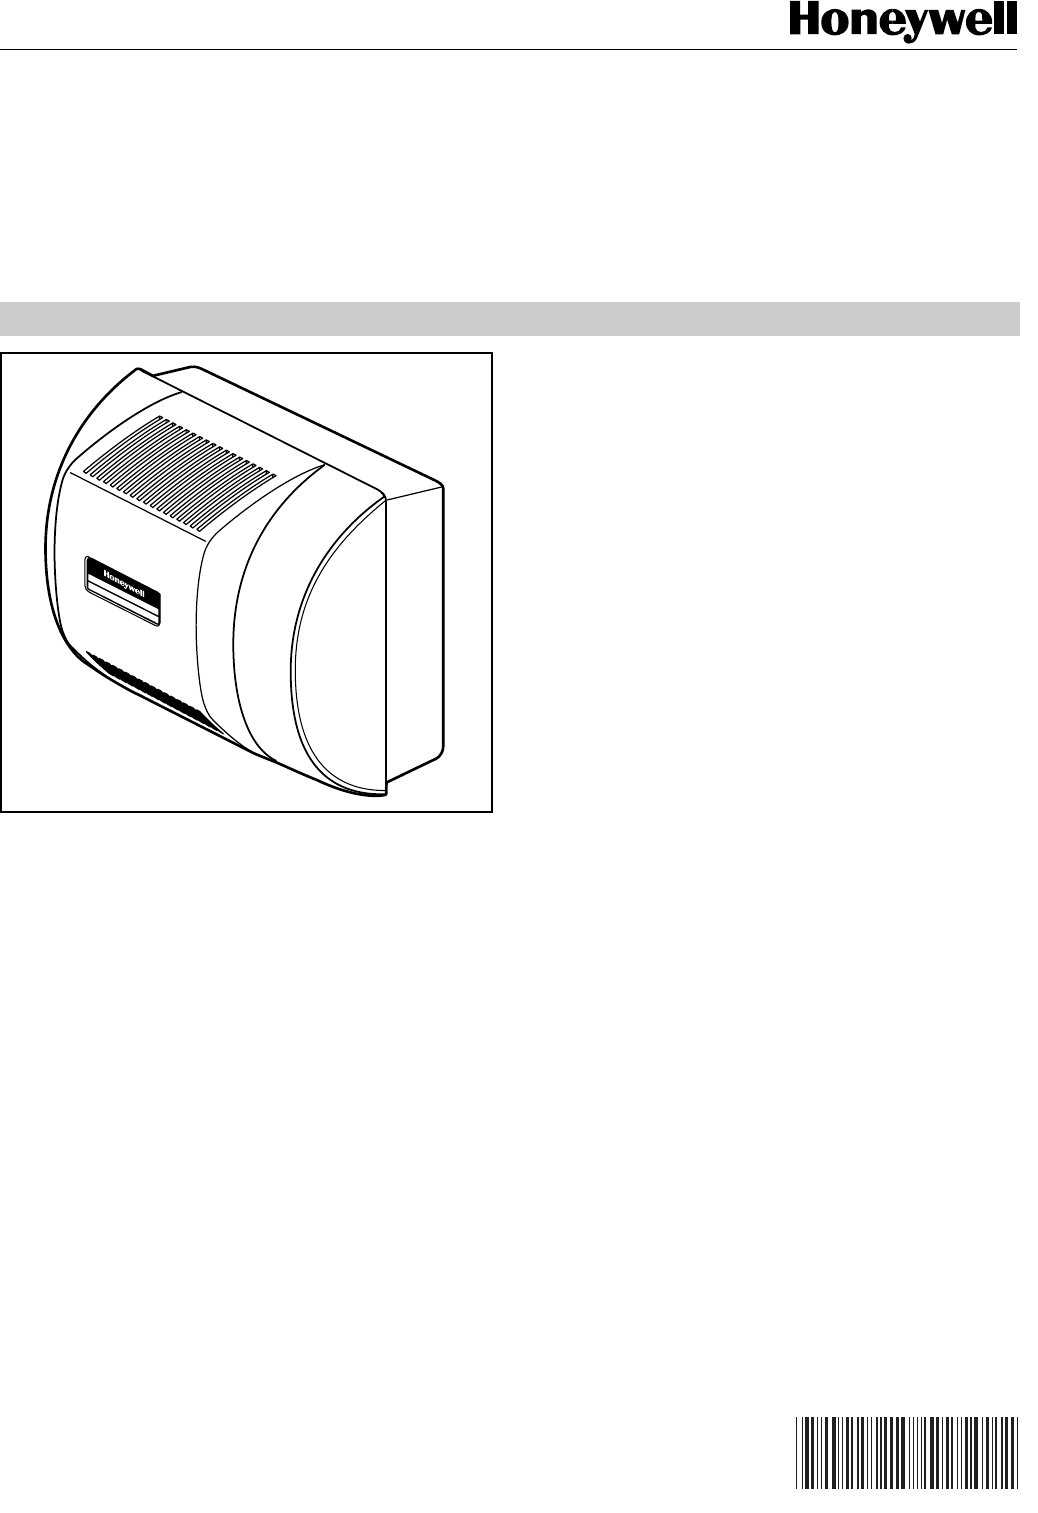 He360 Humidifier Wiring Diagram